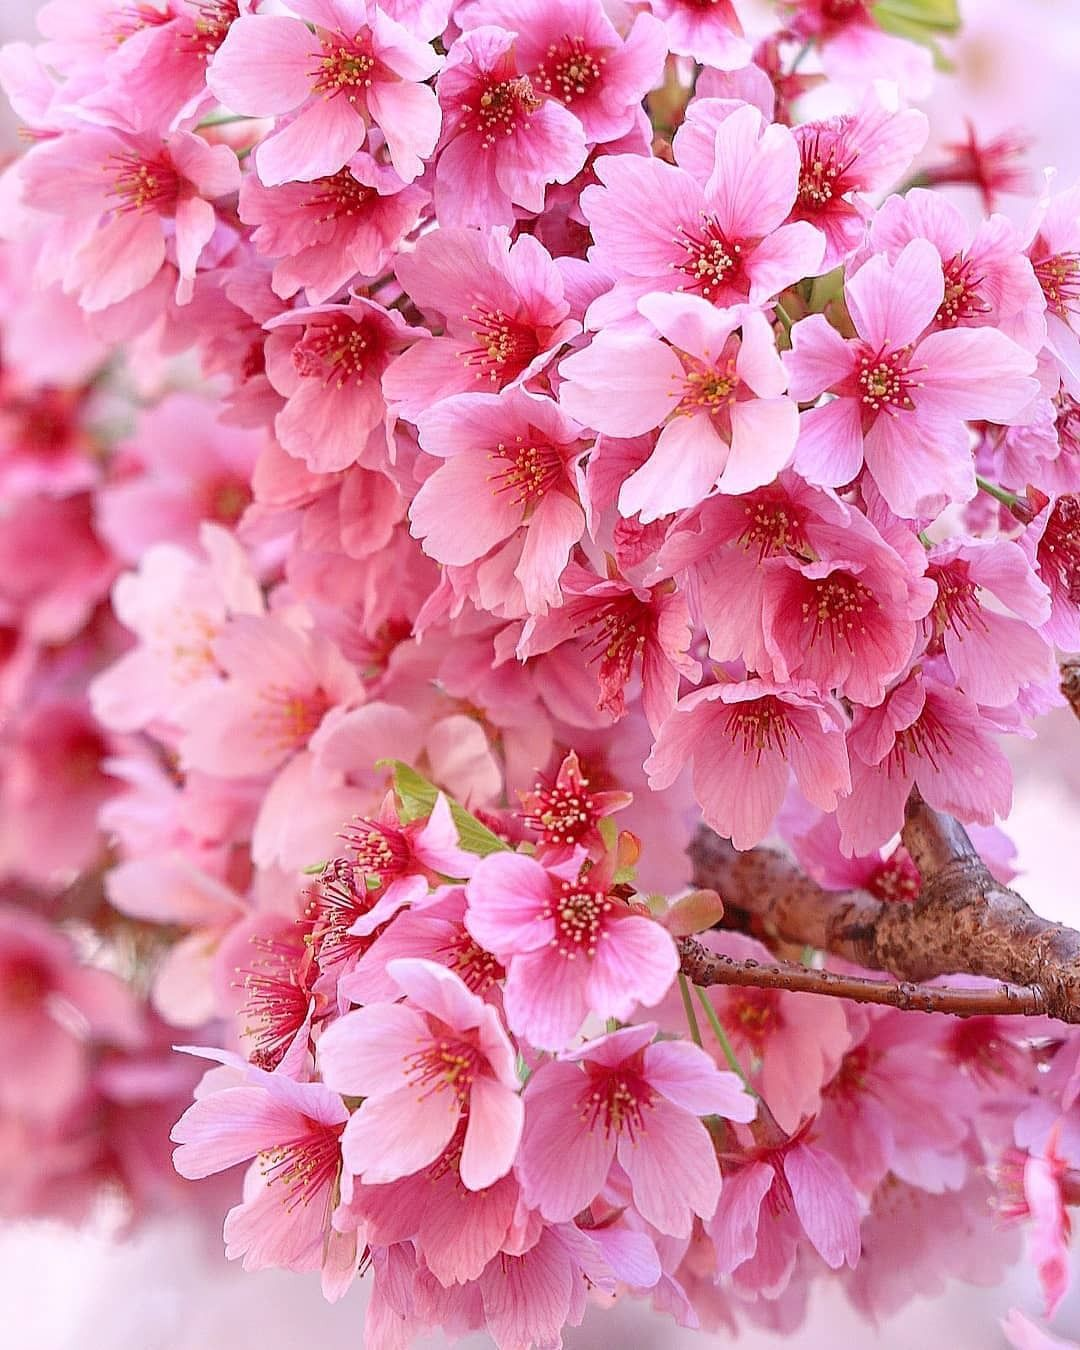 Pin by Christine A. on Spring is in the Air Flowers